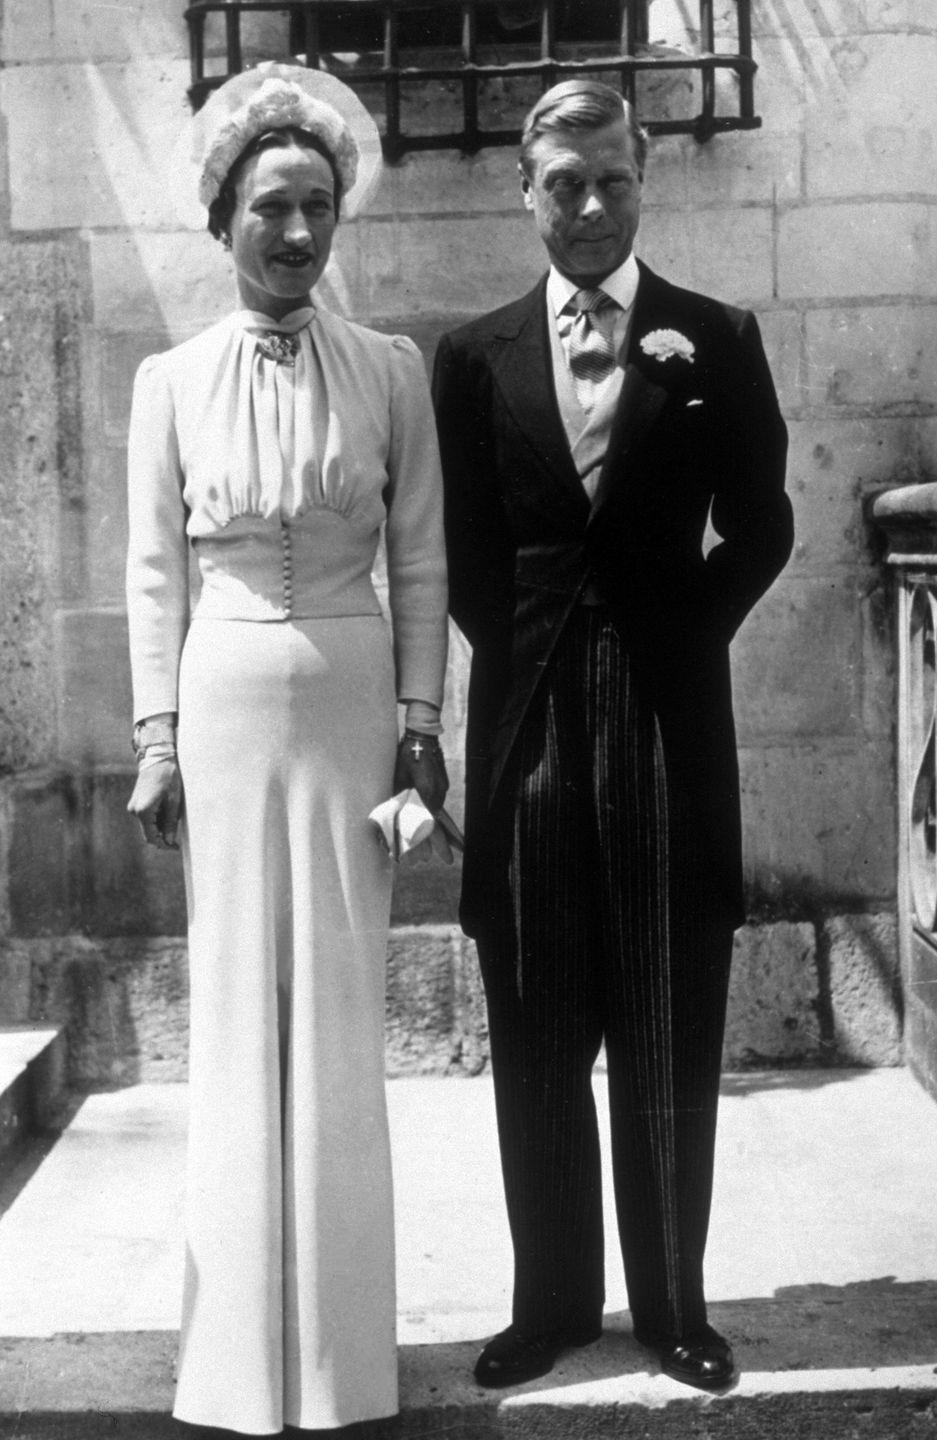 <p>Wallis Simpson was an American socialite who intended to marry the British King Edward VIII. Because of her non-royal status and first marriage that ended in divorce, the king was forced to abdicate his throne in order to marry her. Wallis wore a subtle, blue dress to their wedding, which none of Edward's family attended.</p>